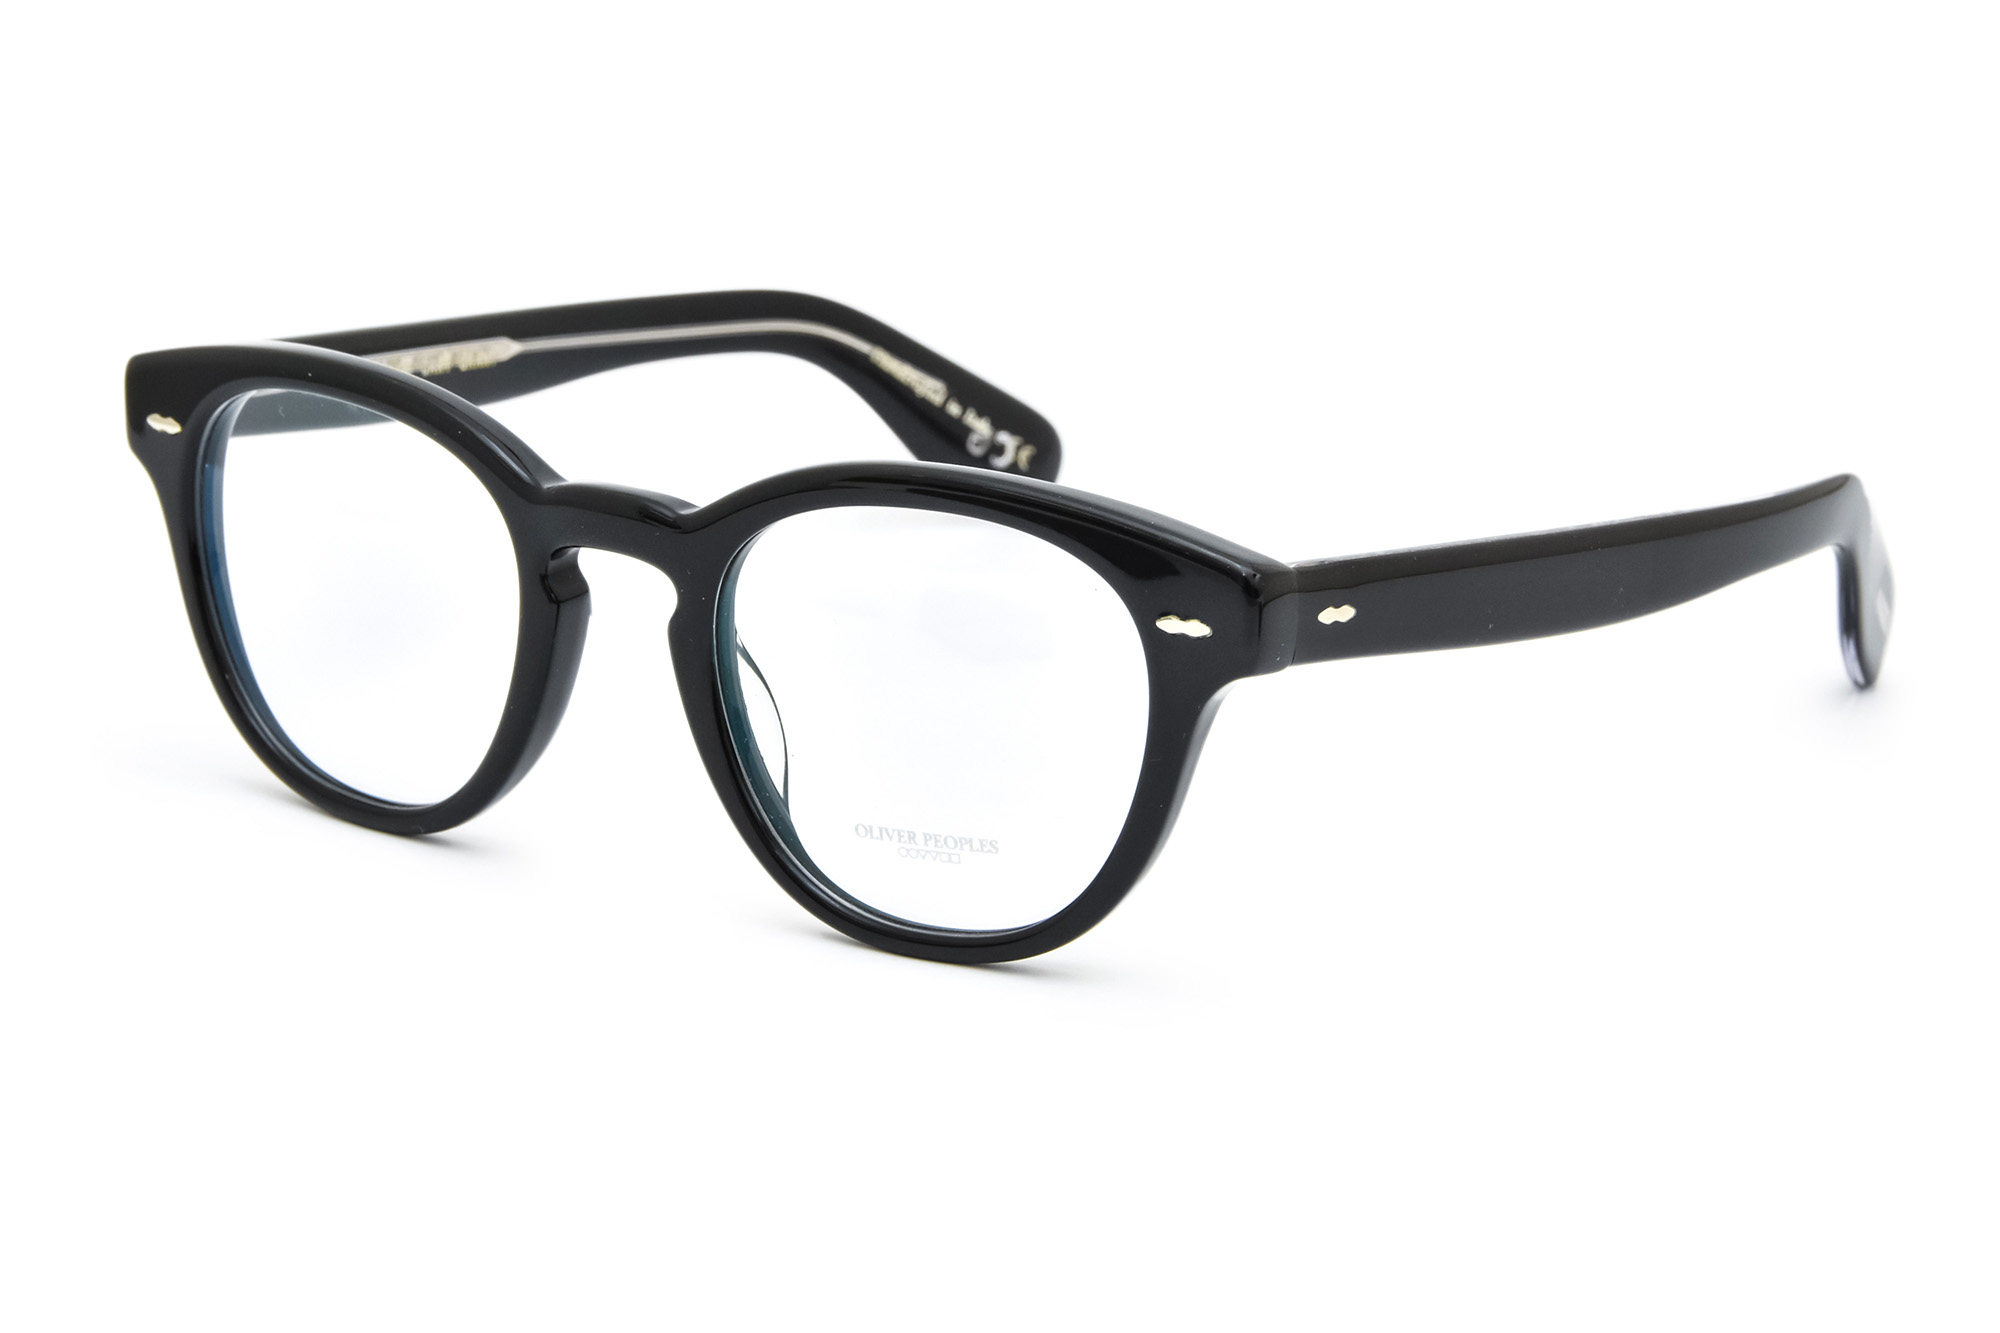 オリバーピープルズ(OLIVER PEOPLES) CARY GRANT/1492  OV5413F